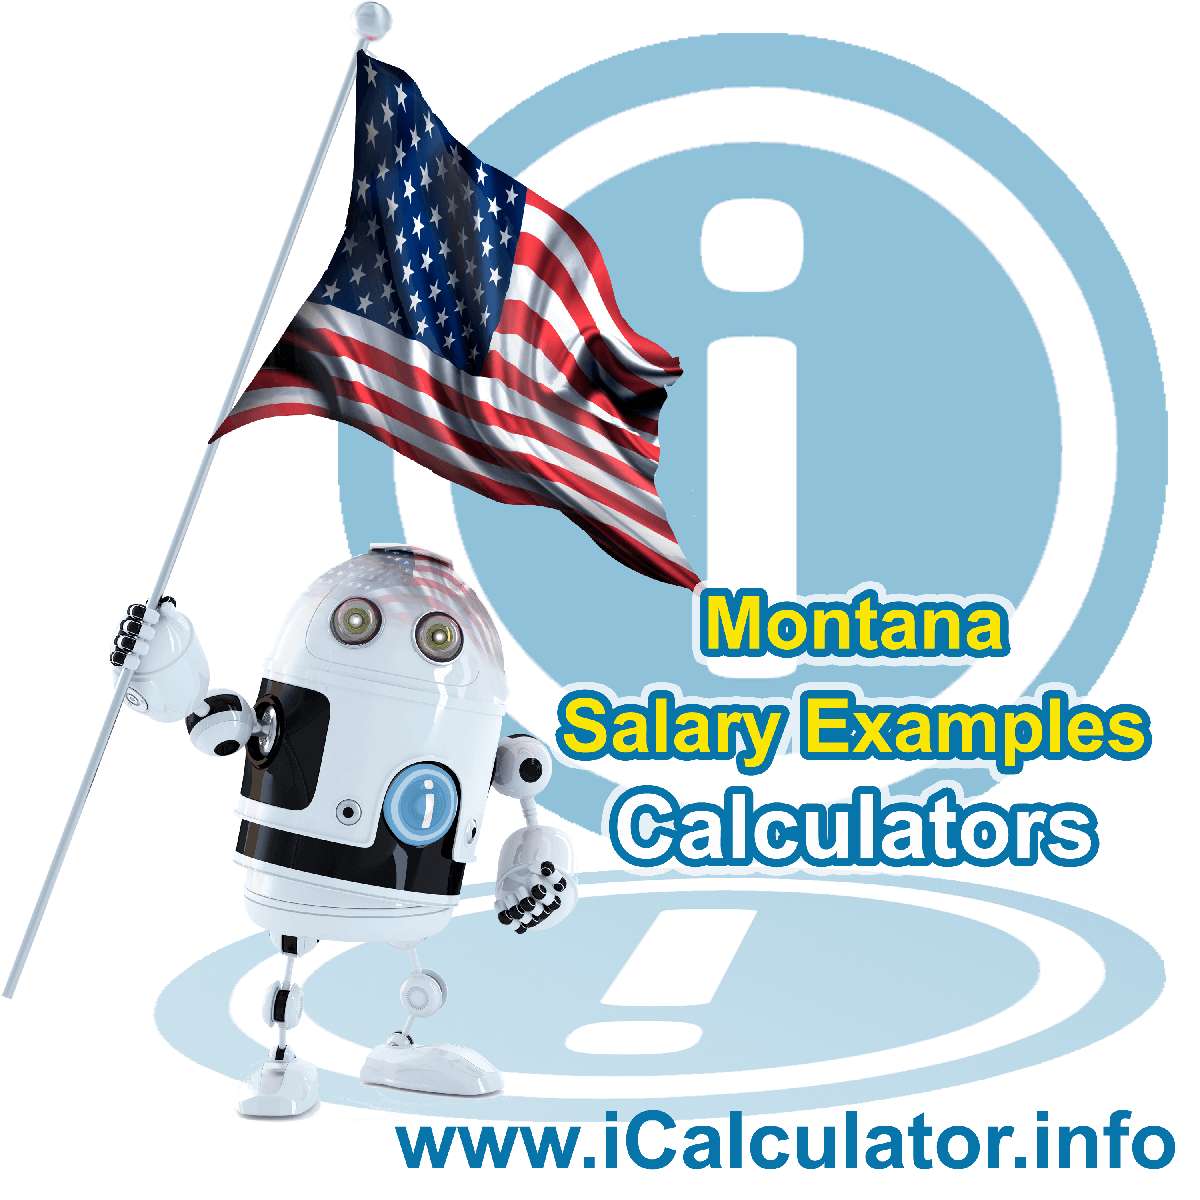 Montana Salary Example for $35,000.00 in 2021 | iCalculator™ | $35,000.00 salary example for employee and employer paying Montana State tincome taxes. Detailed salary after tax calculation including Montana State Tax, Federal State Tax, Medicare Deductions, Social Security, Capital Gains and other income tax and salary deductions complete with supporting Montana state tax tables